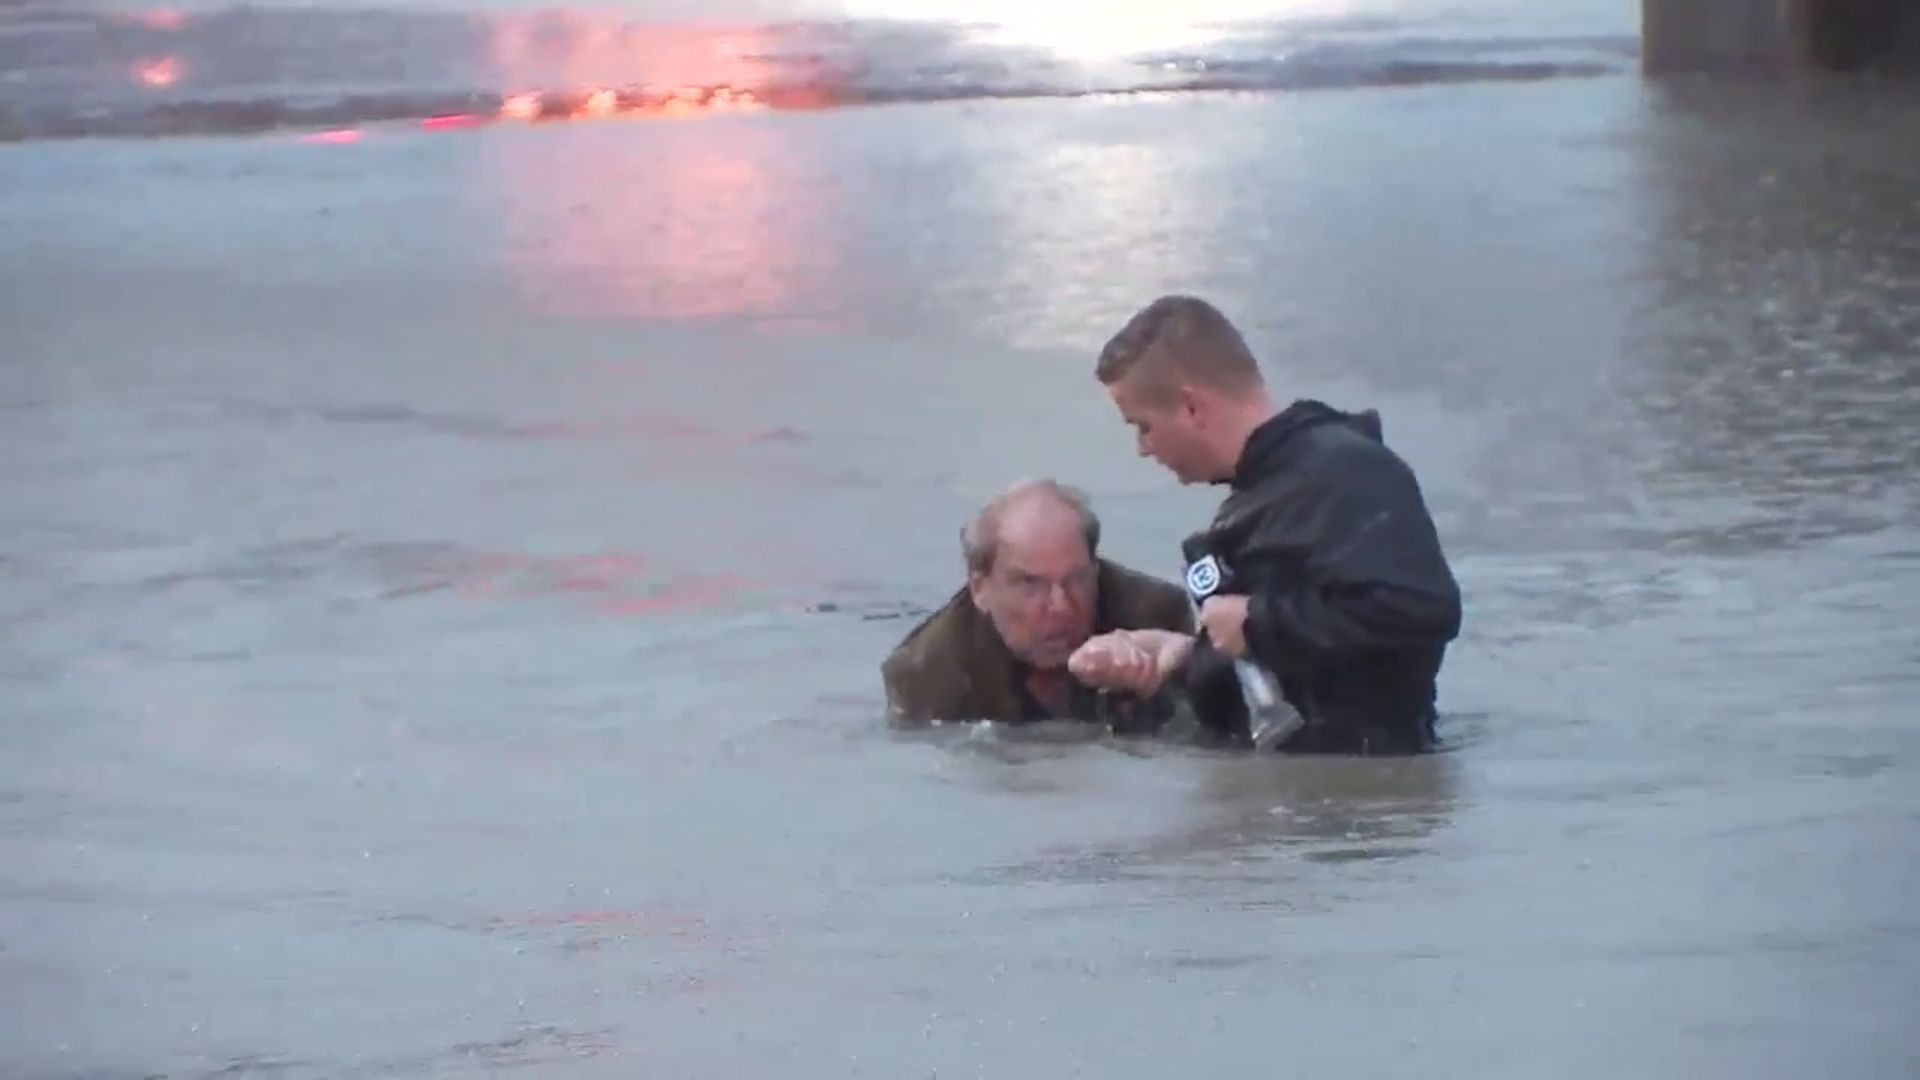 A local TV reporter is seen helping guide the driver out of the water and to higher ground.